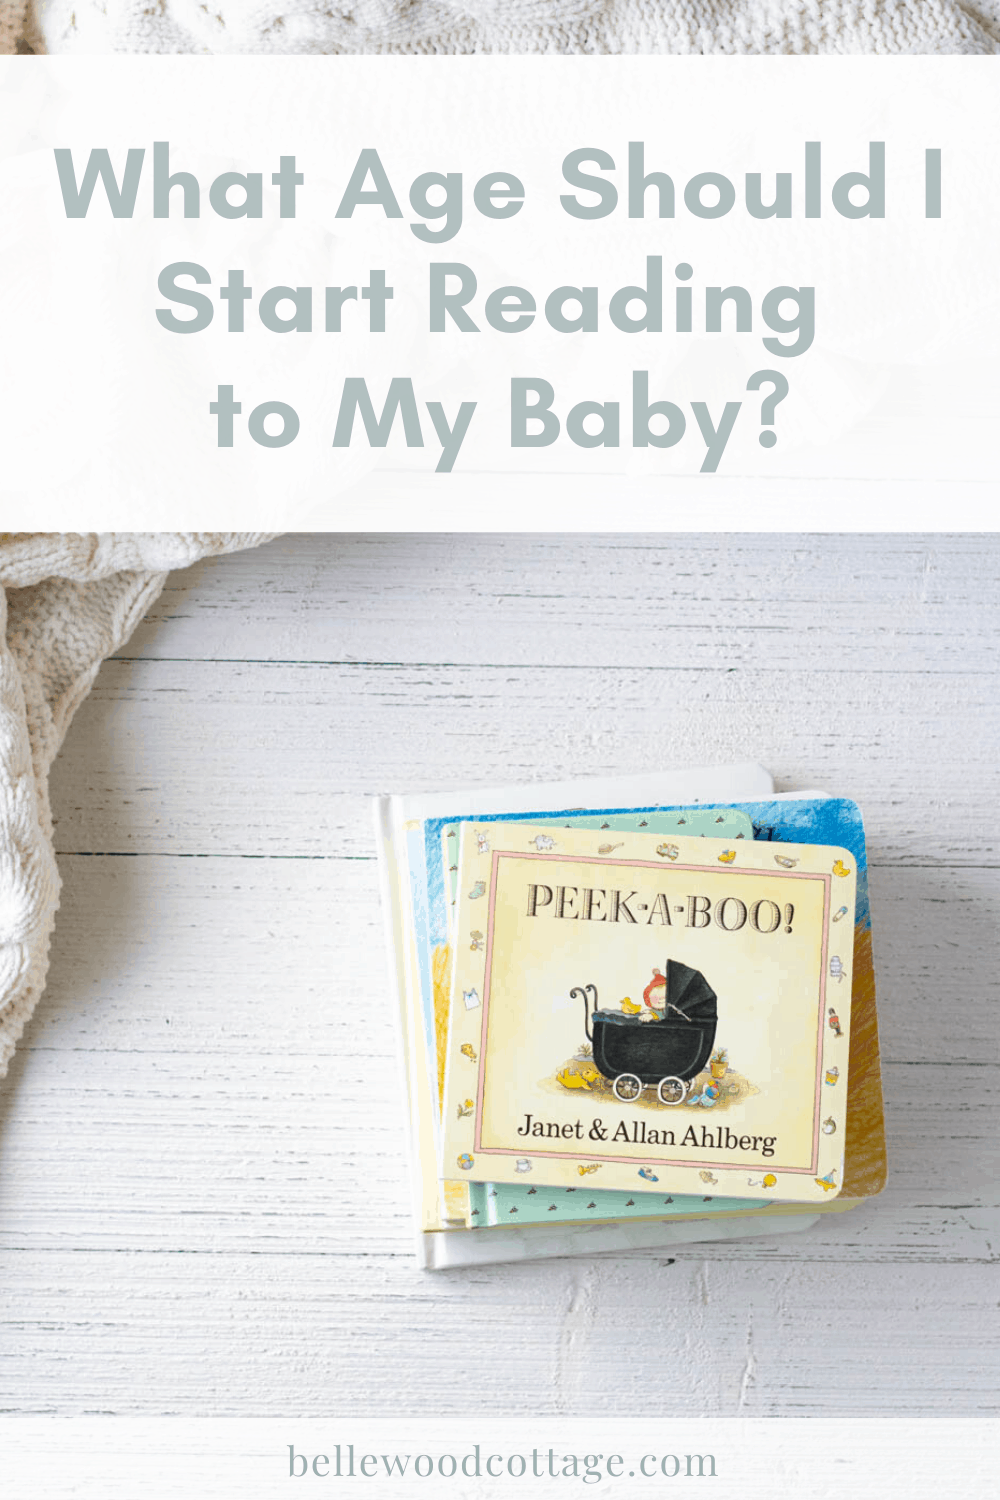 What age should I start reading to my baby? Whether you have a newborn or a toddler, learn all about the right time to start reading aloud. Reading aloud with your baby is one of the best infant activities to do with your newborn (and your growing baby!).